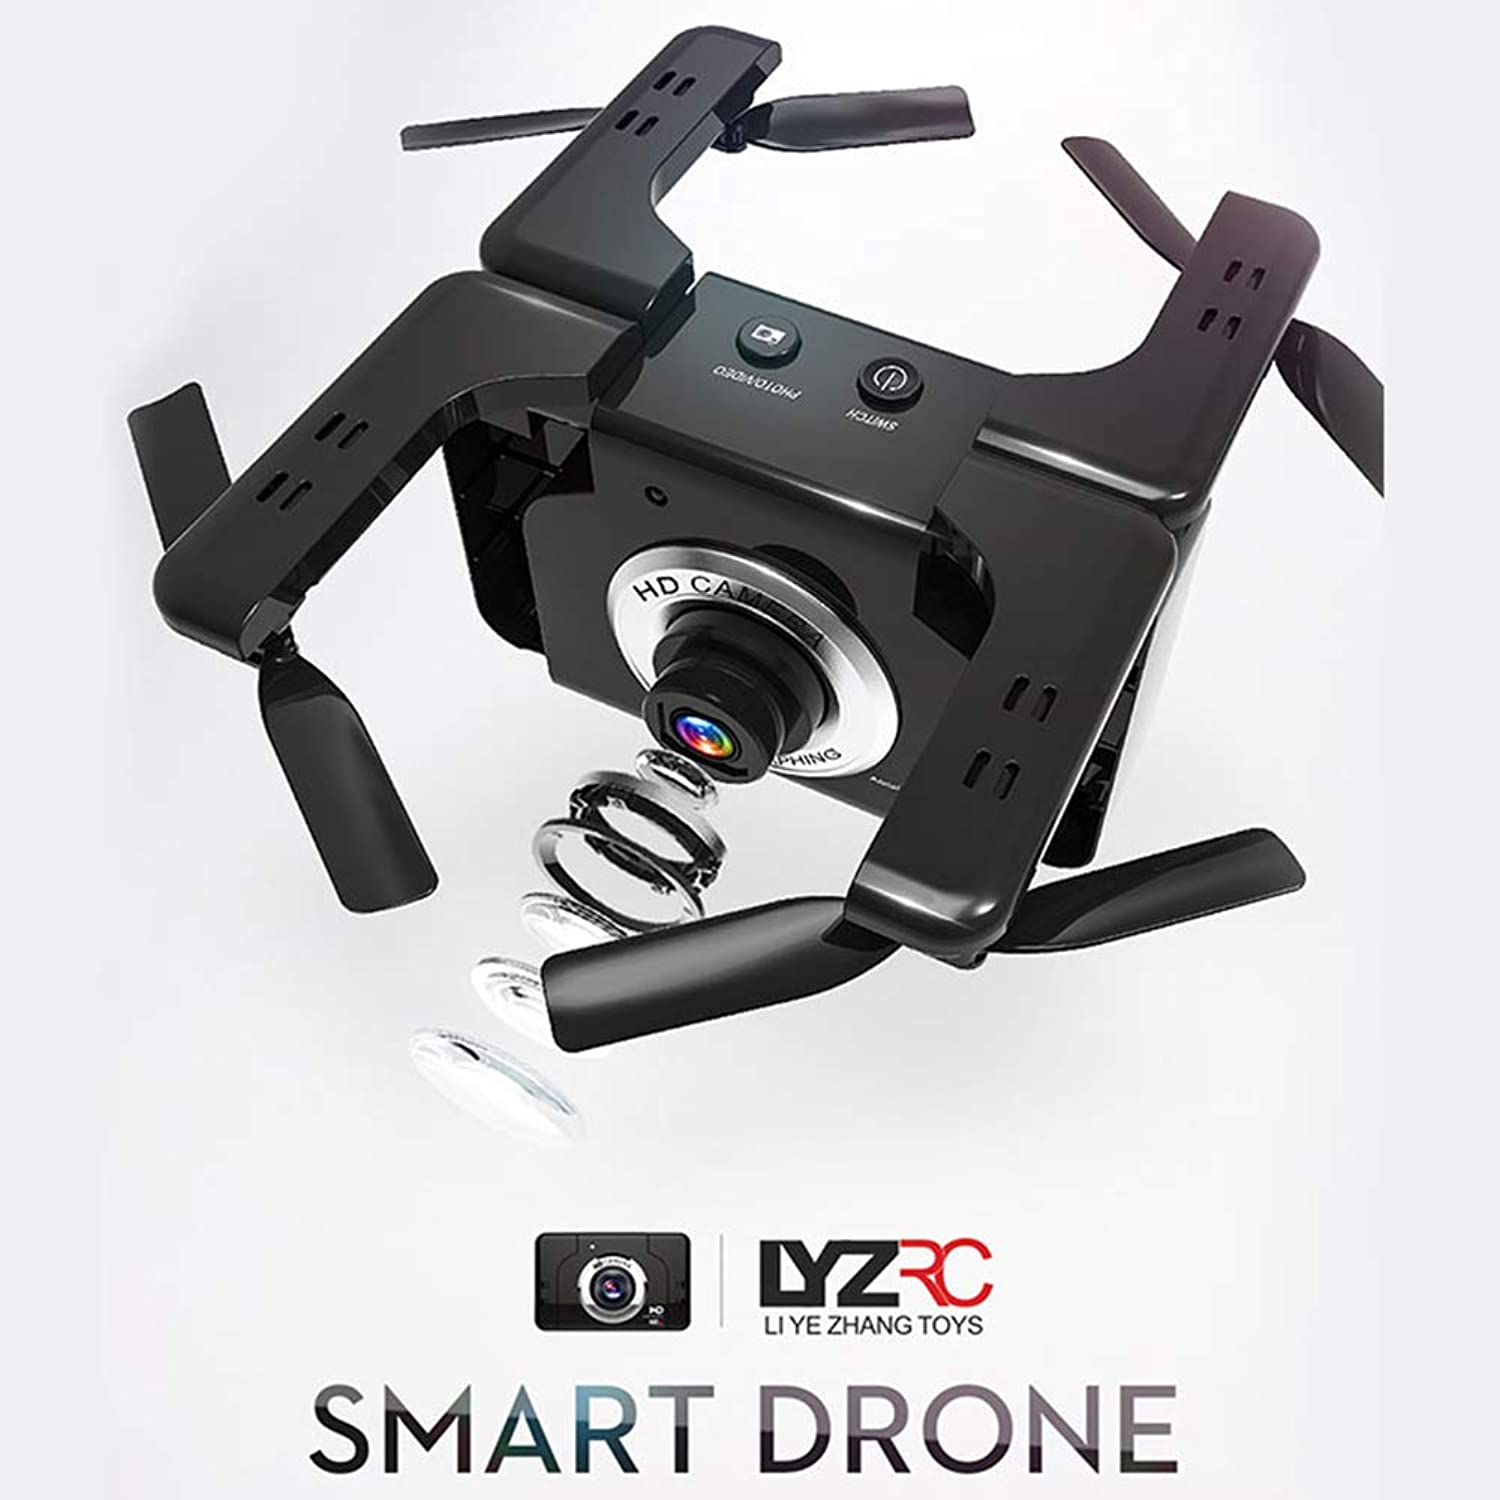 STAY TRULY Remote control Drone with Quadcopter, HD Camera RC RTF 4 Channel 2.4GHz 6Gyro with Altitude Hold Function, One Key Return Home and Headless Mode